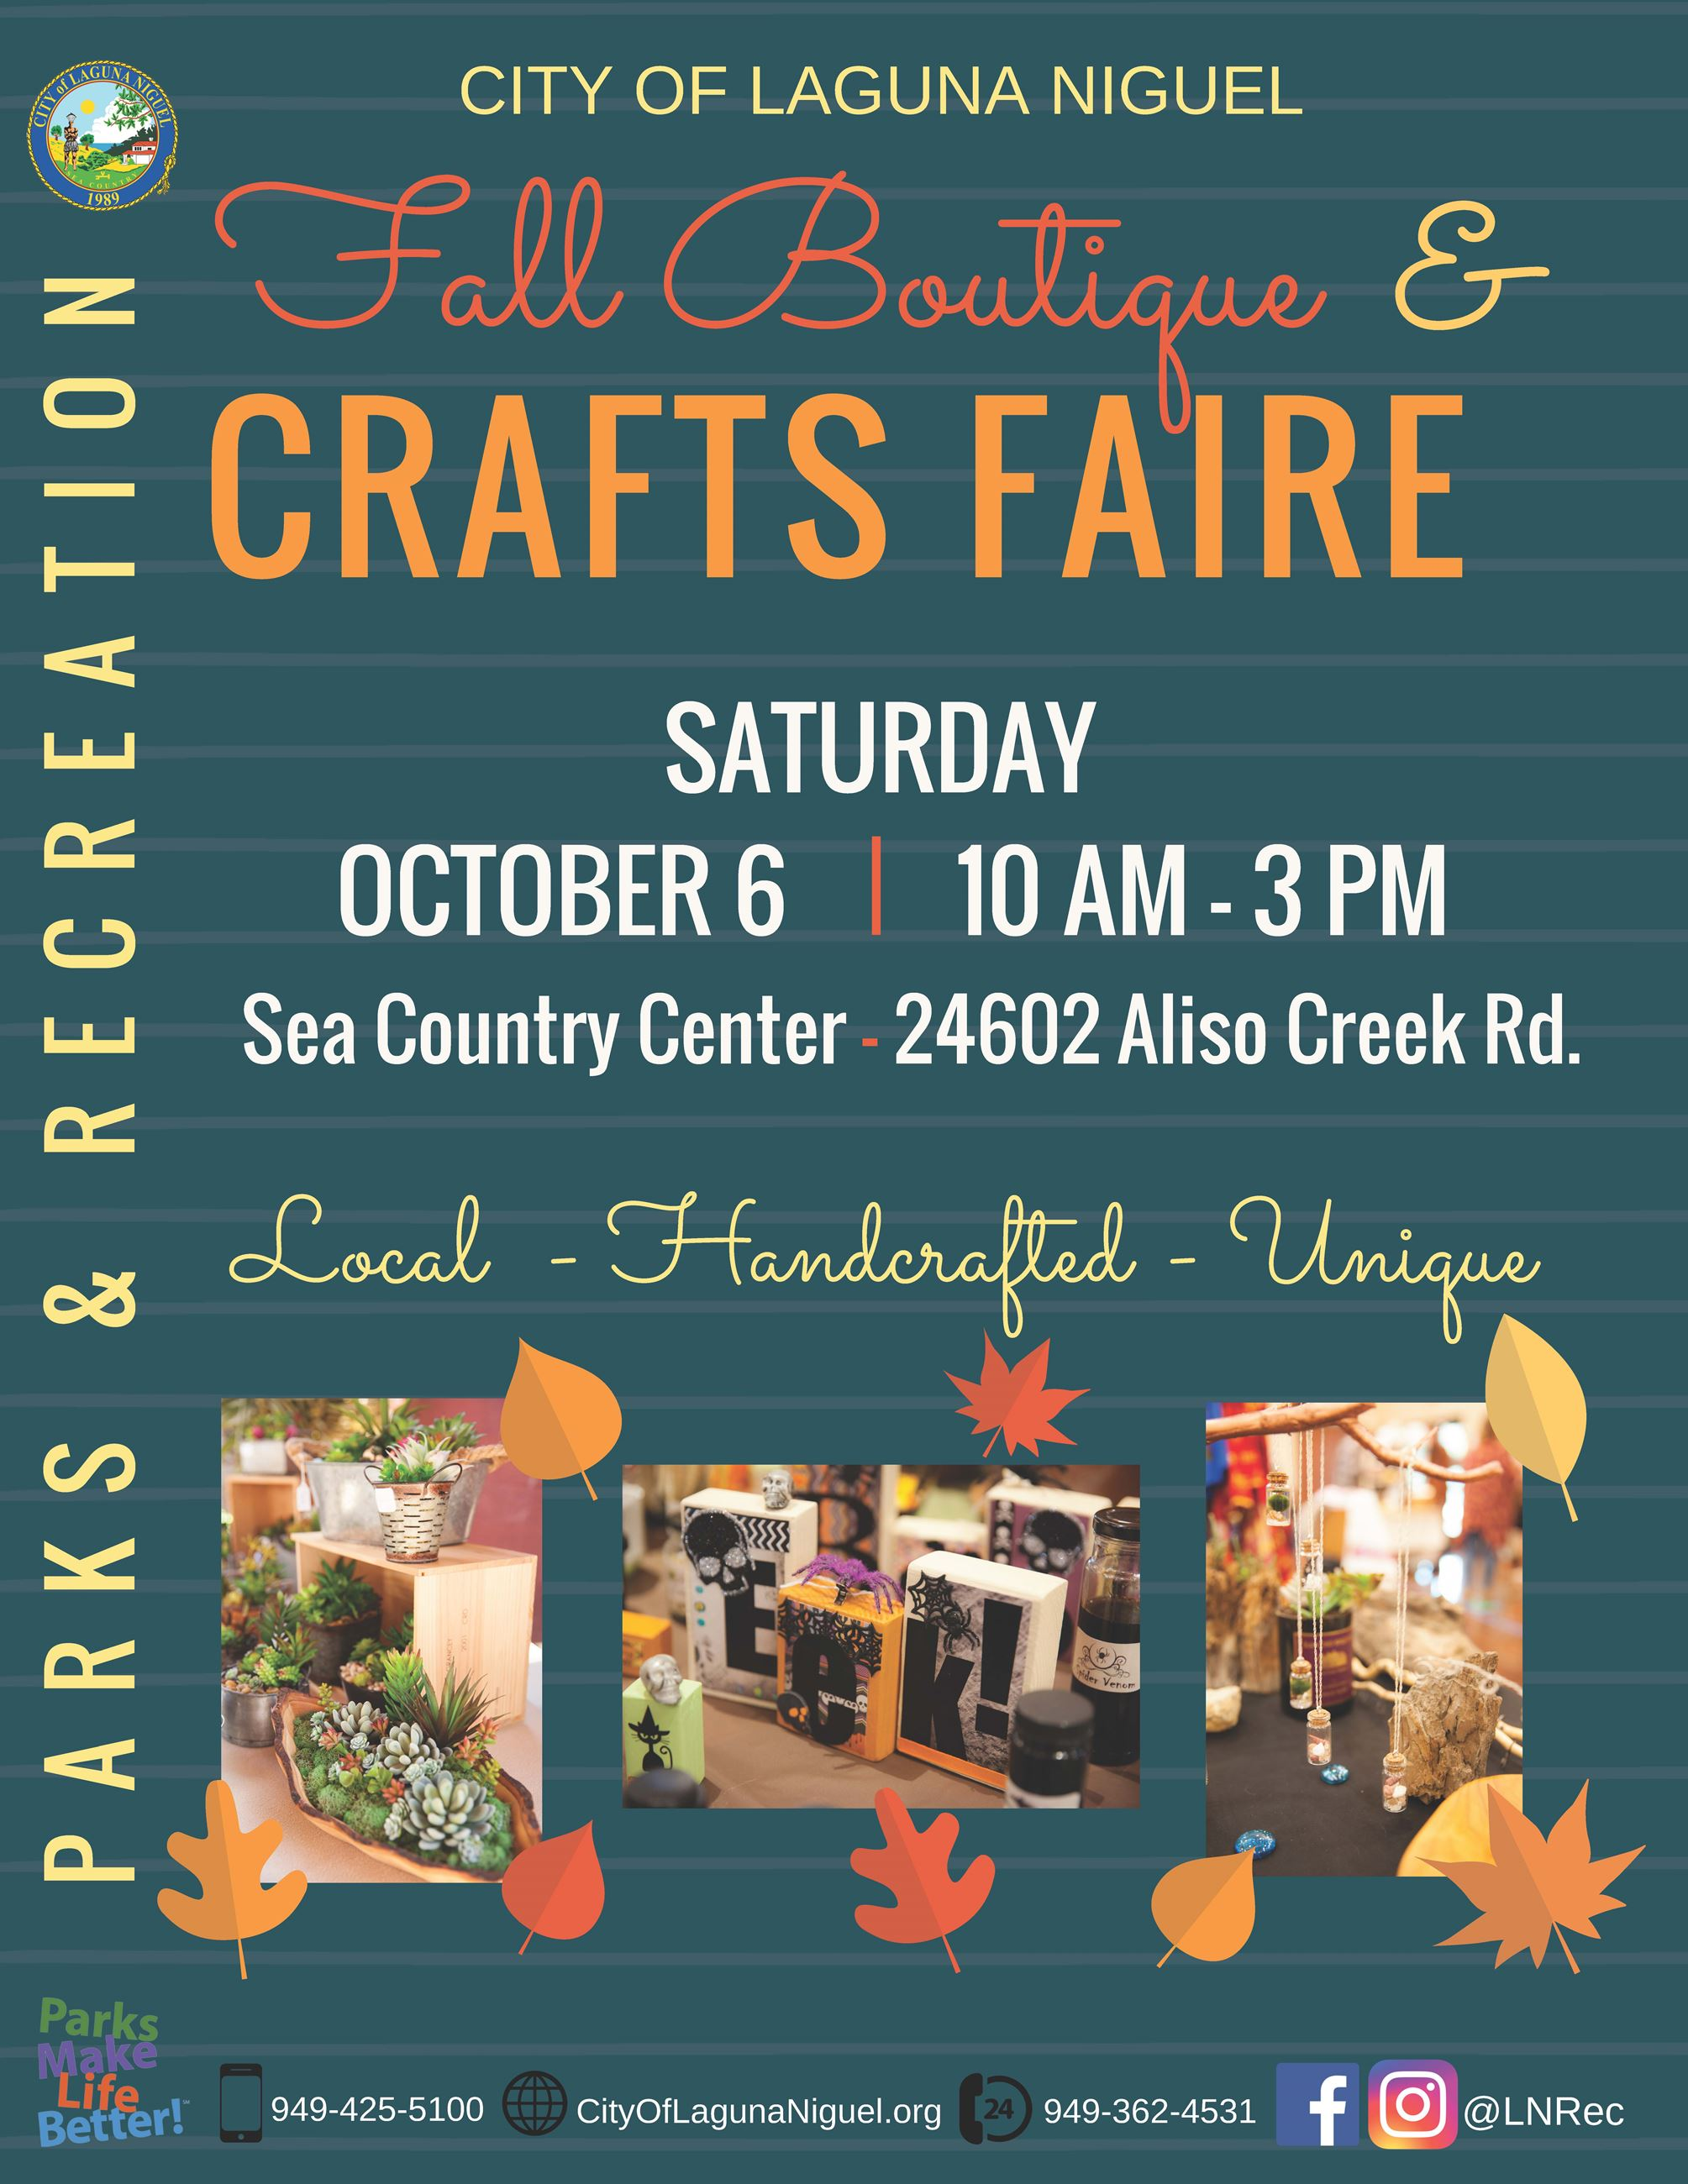 Crafts Faire Flyer 2018